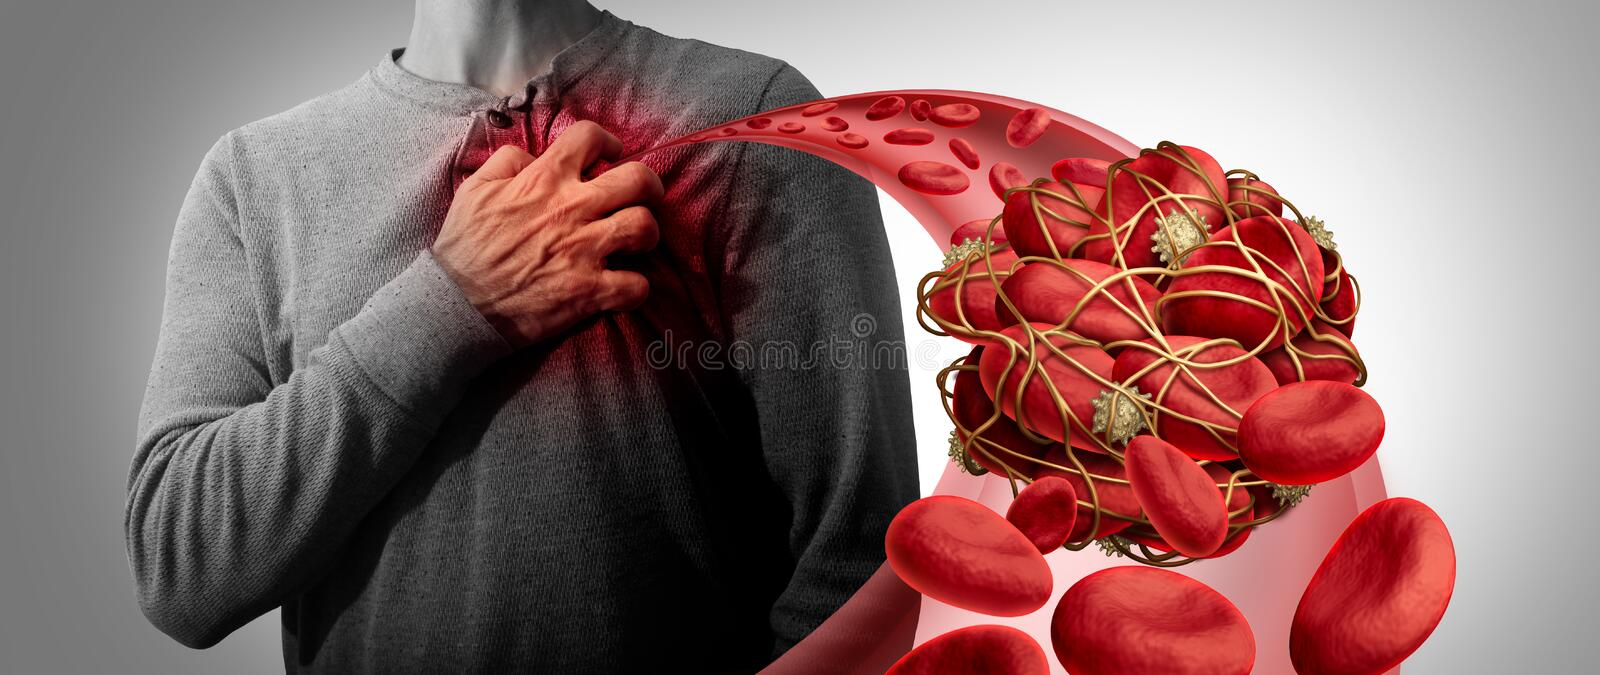 Blood Clot Health Risk. Or thrombosis medical illustration symbol as a group of human blood cells clumped together by sticky platelets and fibrin as a blockage royalty free illustration